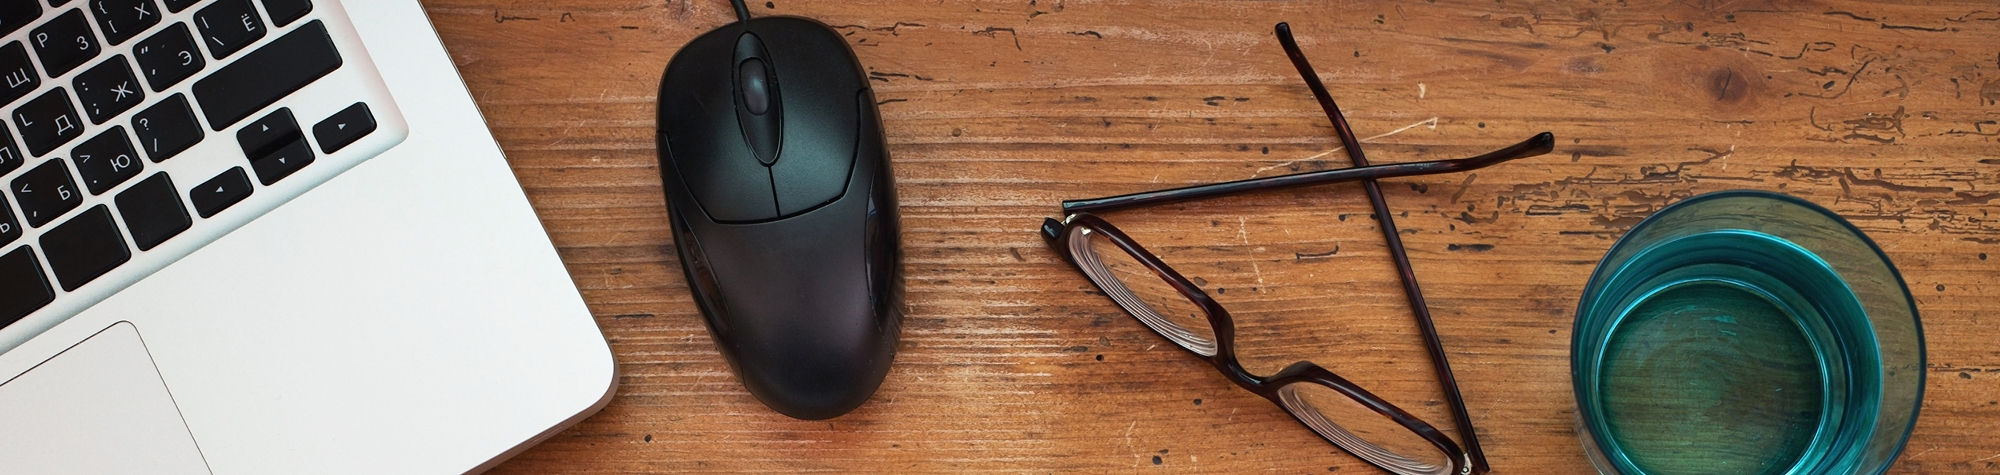 Search Consultancy's Blog Subscription Page. Featuring A Laptop Keyboard, A Mouse, Glasses And A Glass Of Water On A Wooden Desk